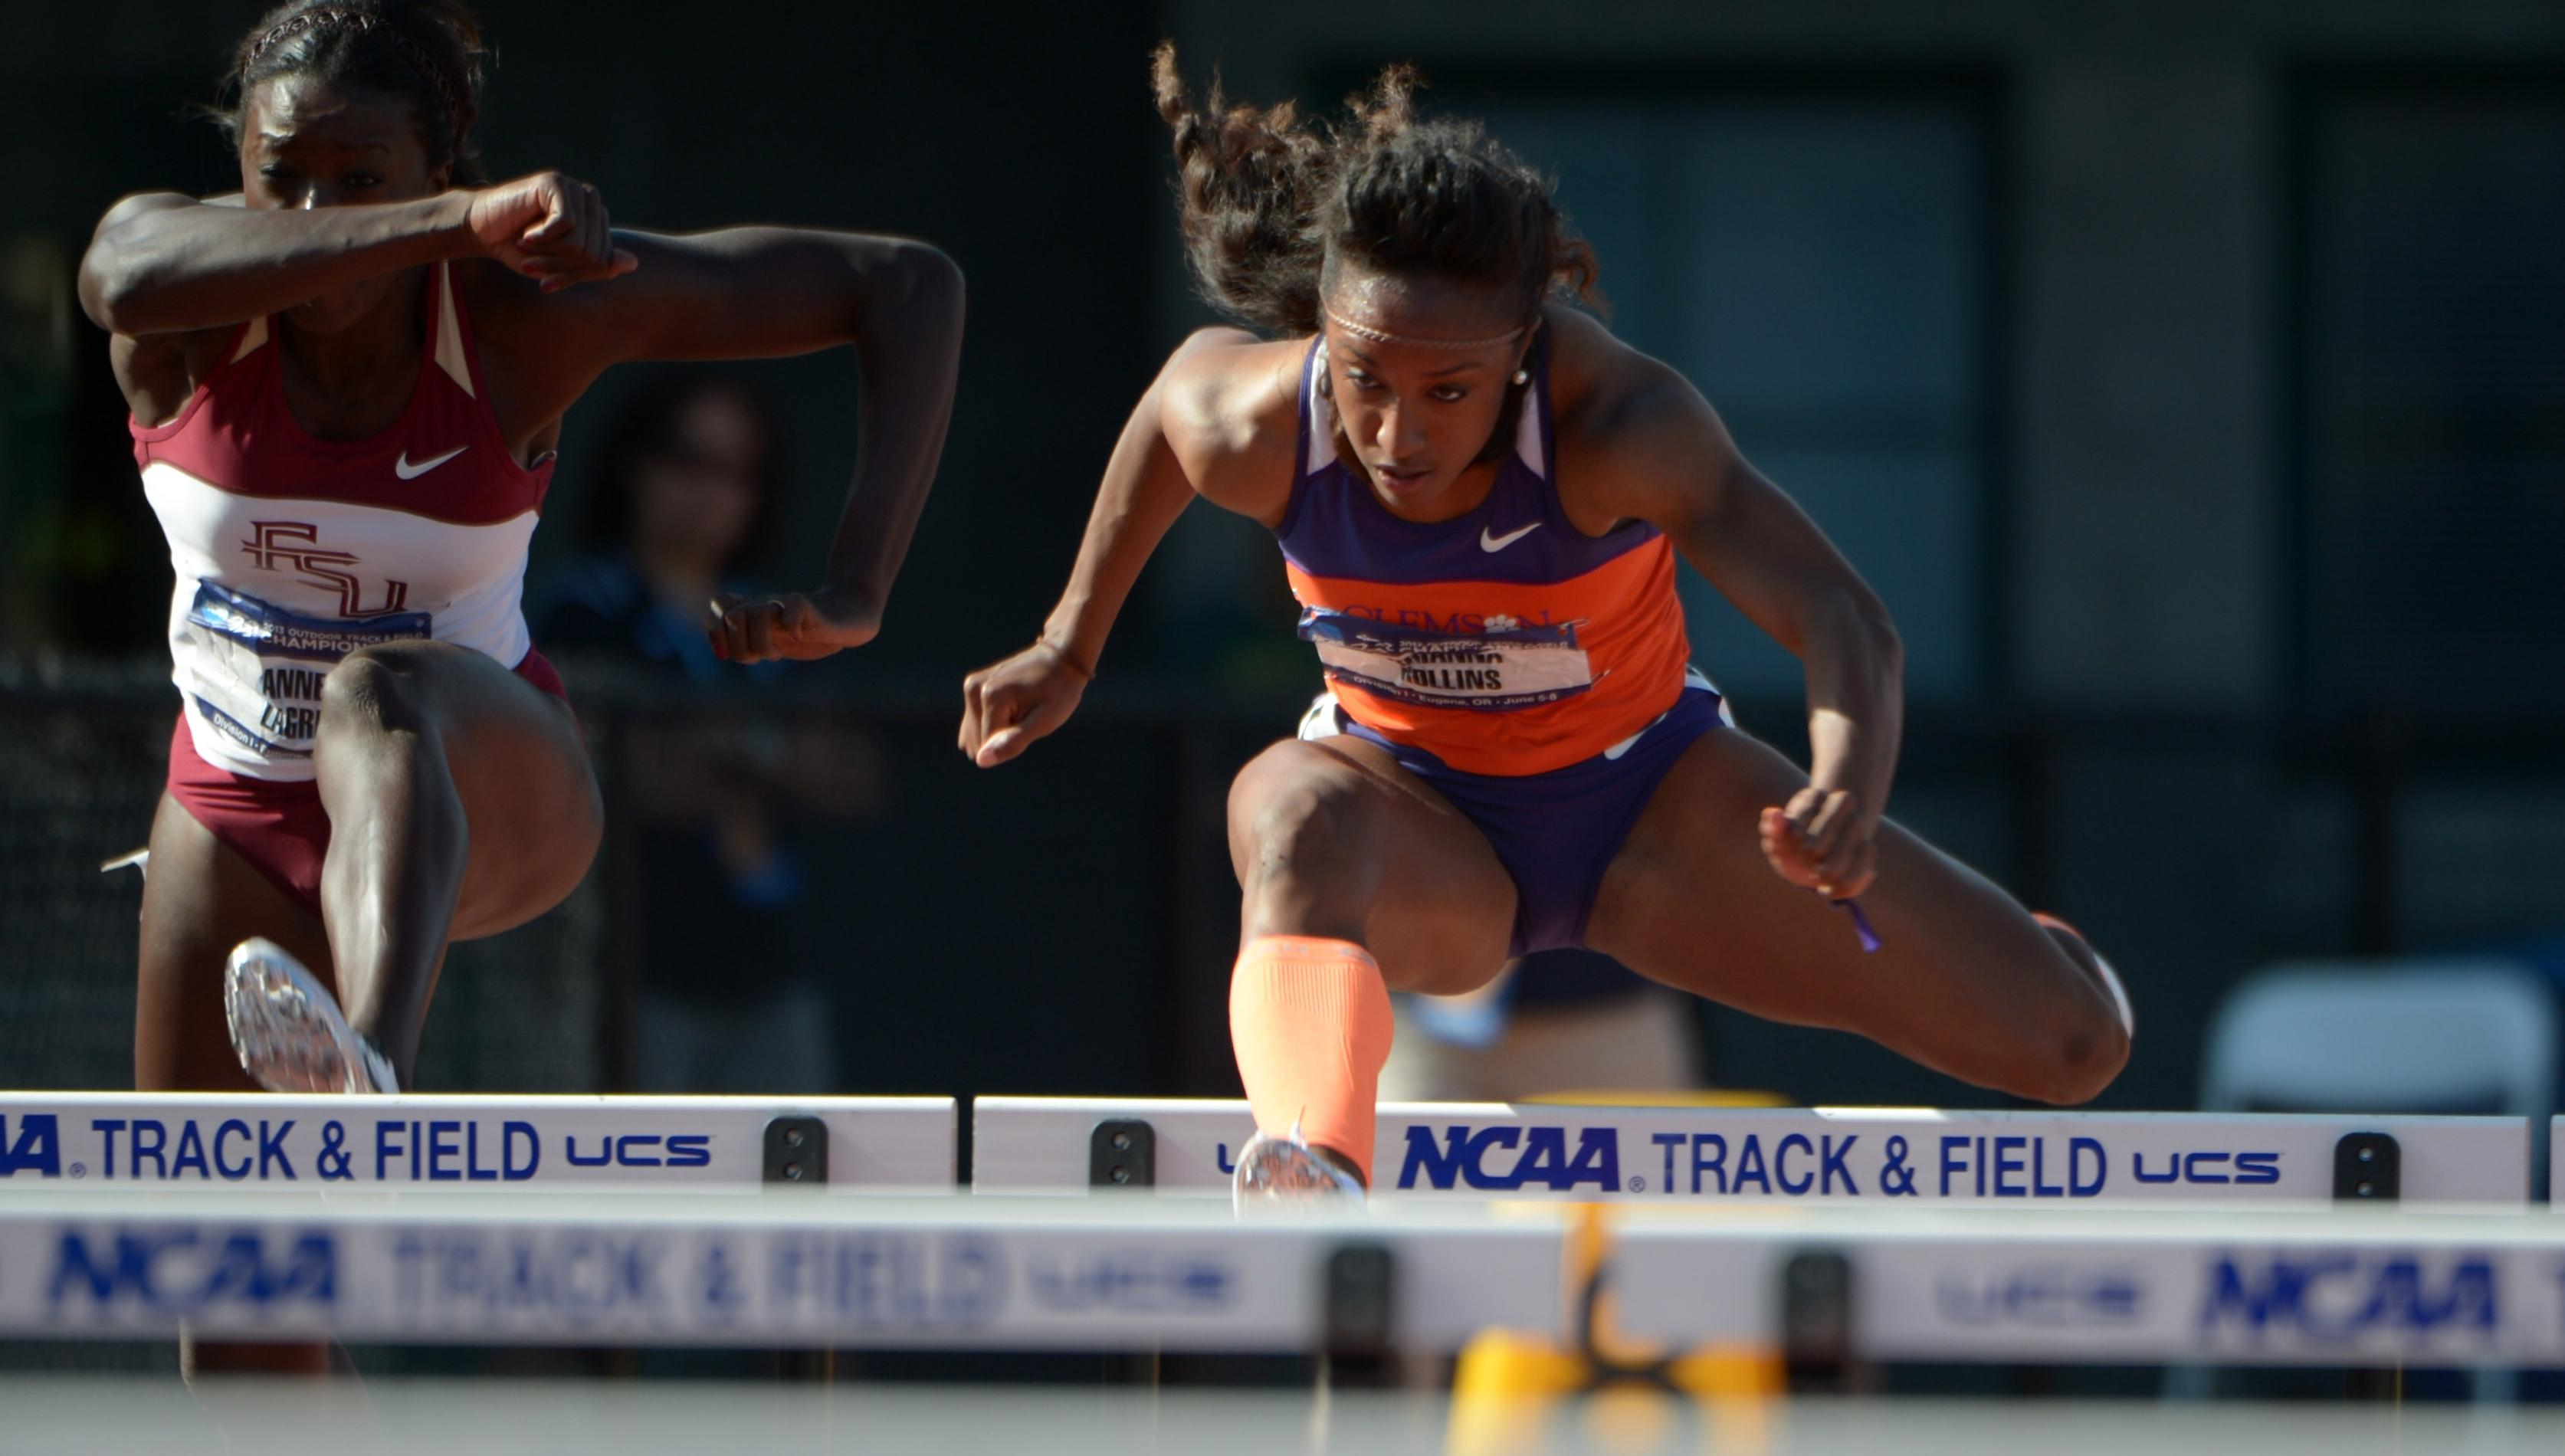 Rollins Breaks NCAA Record in 100 Hurdles Thursday at Outdoor Nationals